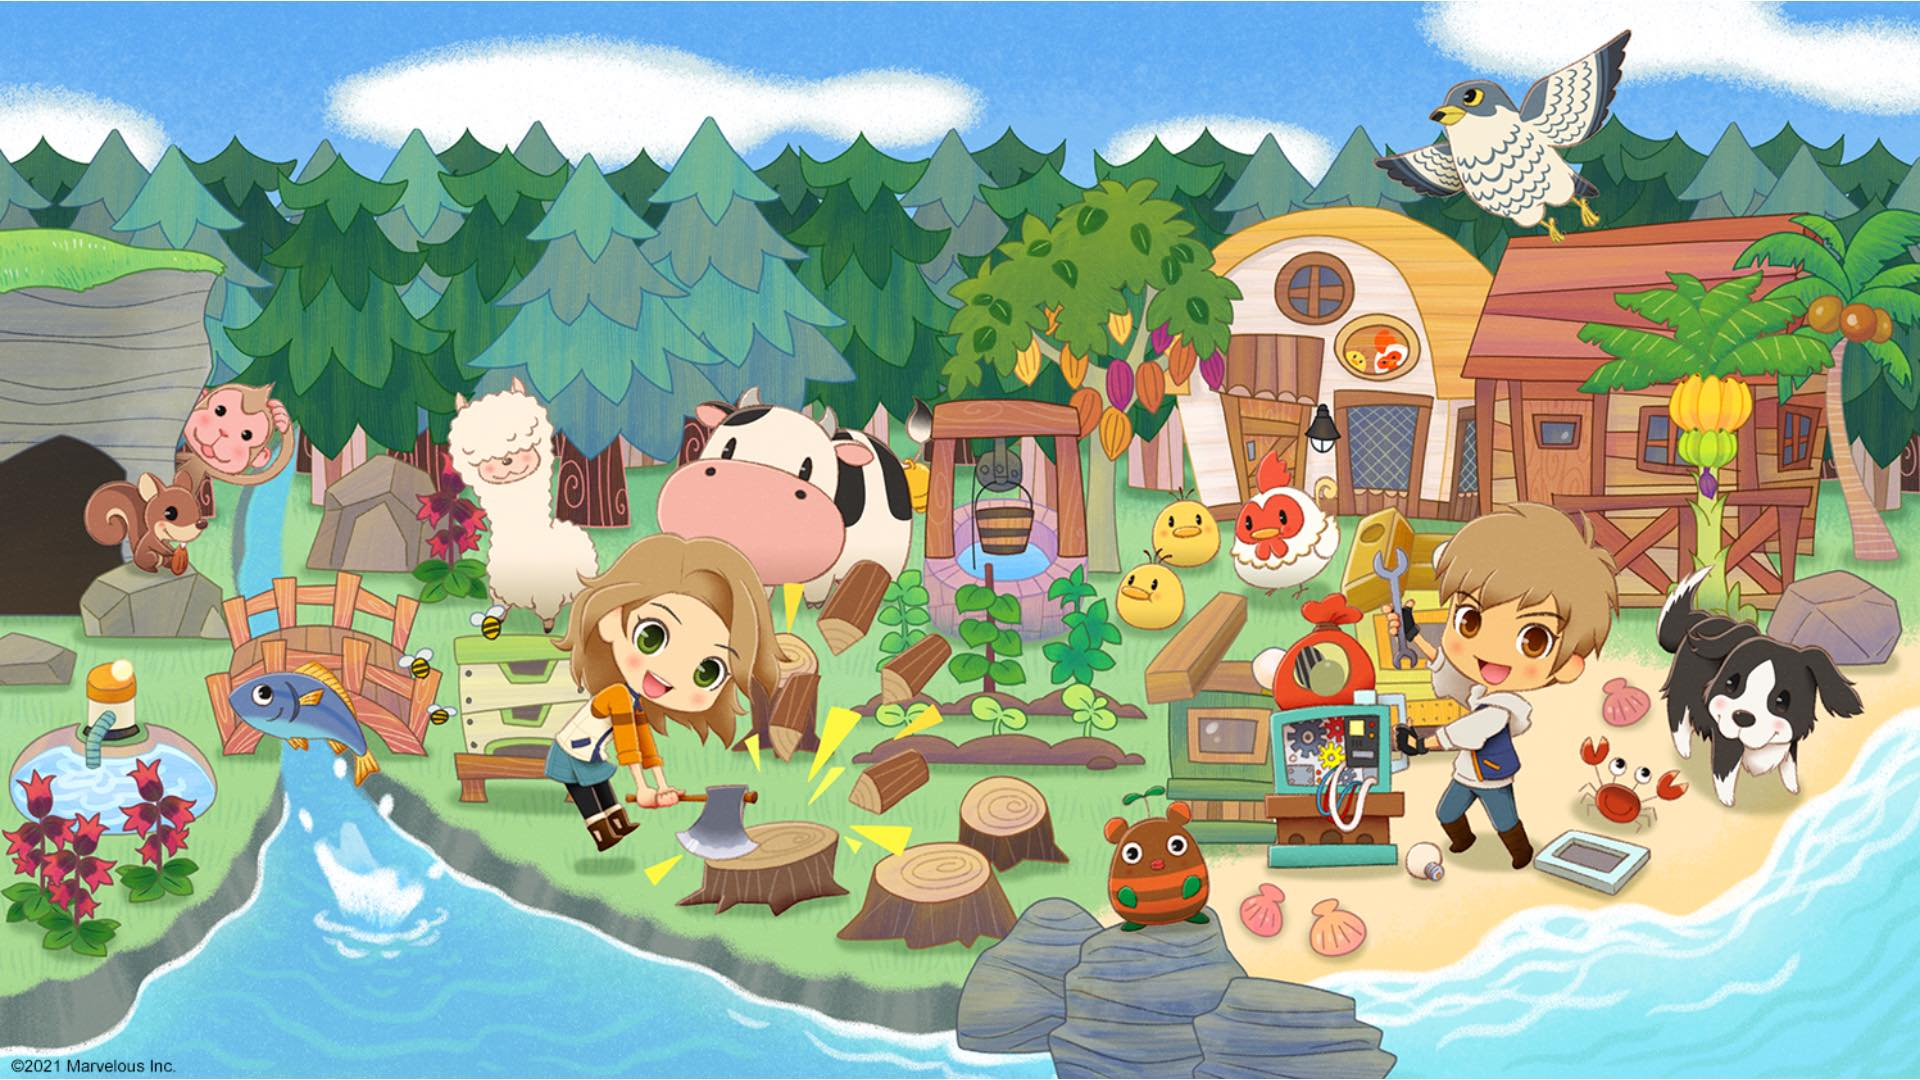 New Trailers Released For Story of Seasons: Pioneers of Olive Town